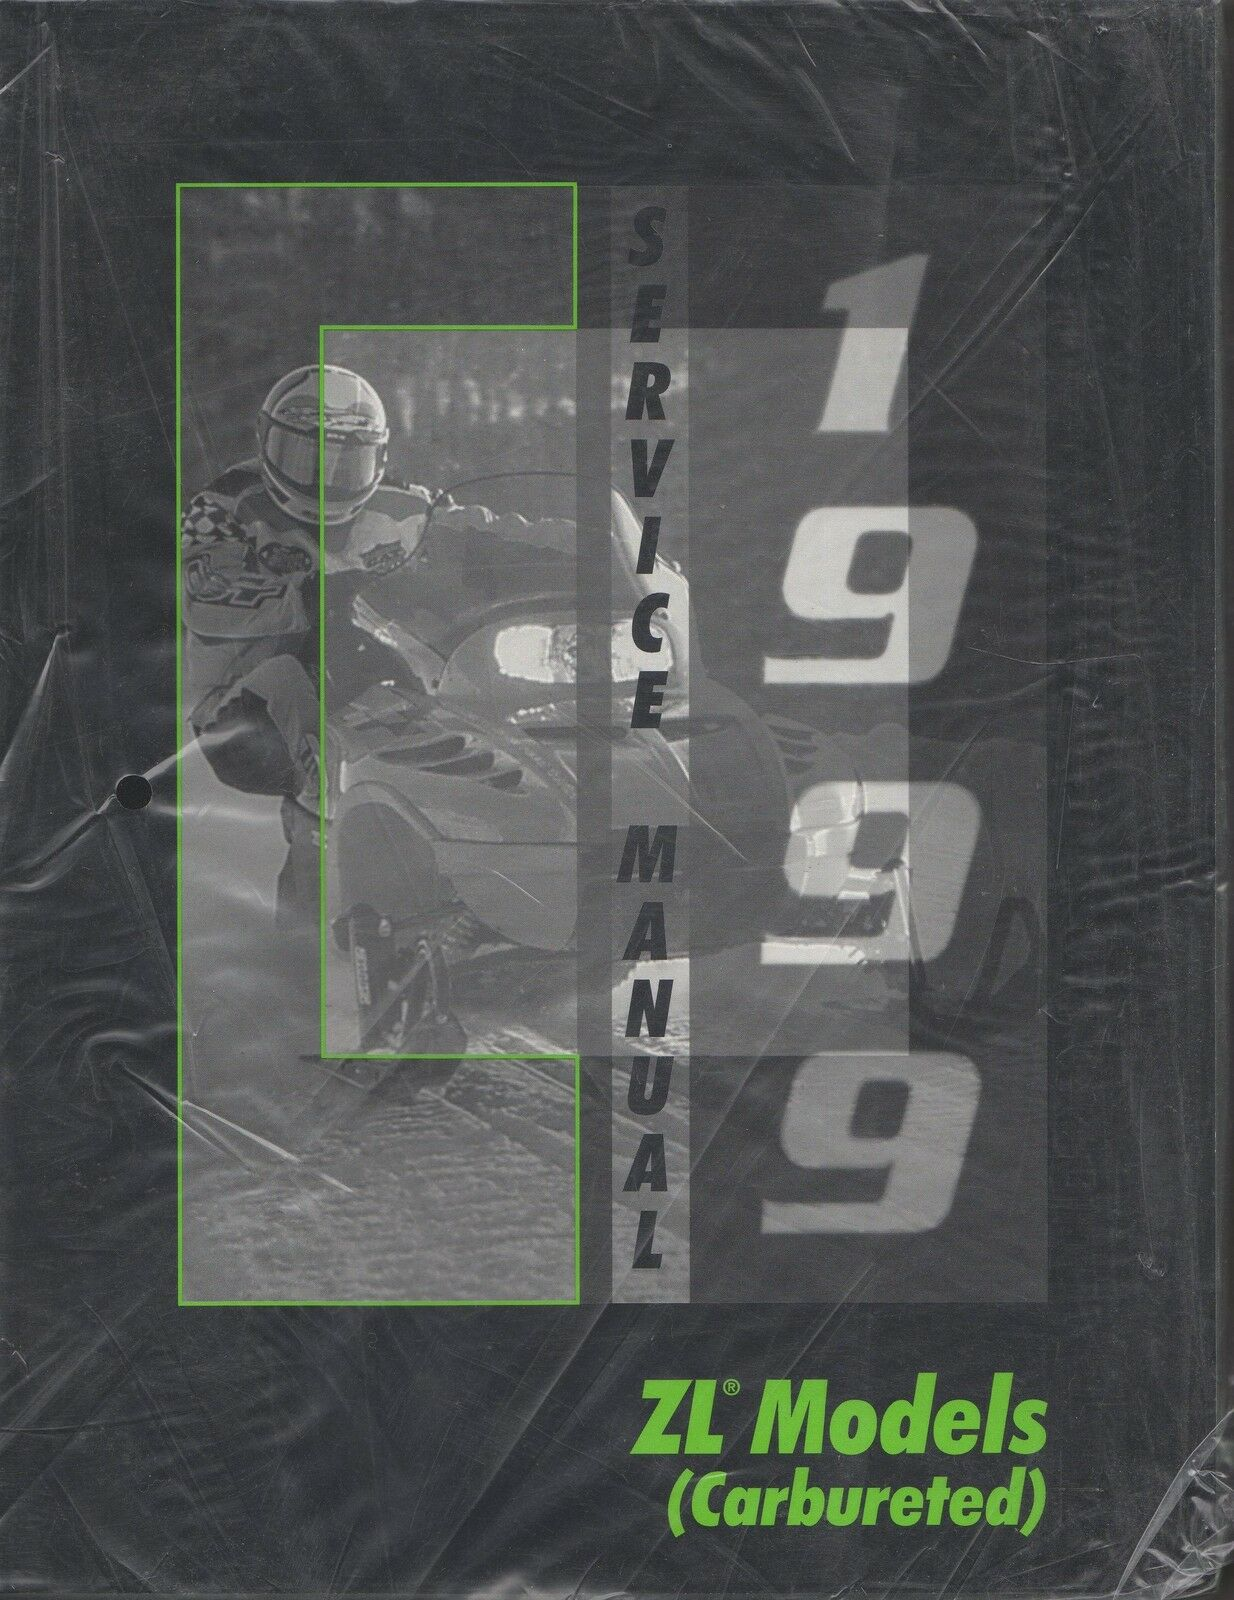 1999 ARCTIC CAT SNOWMOBILE ZL MODELS  (CARBURETED) SERVICE MANUAL P N 2255-937